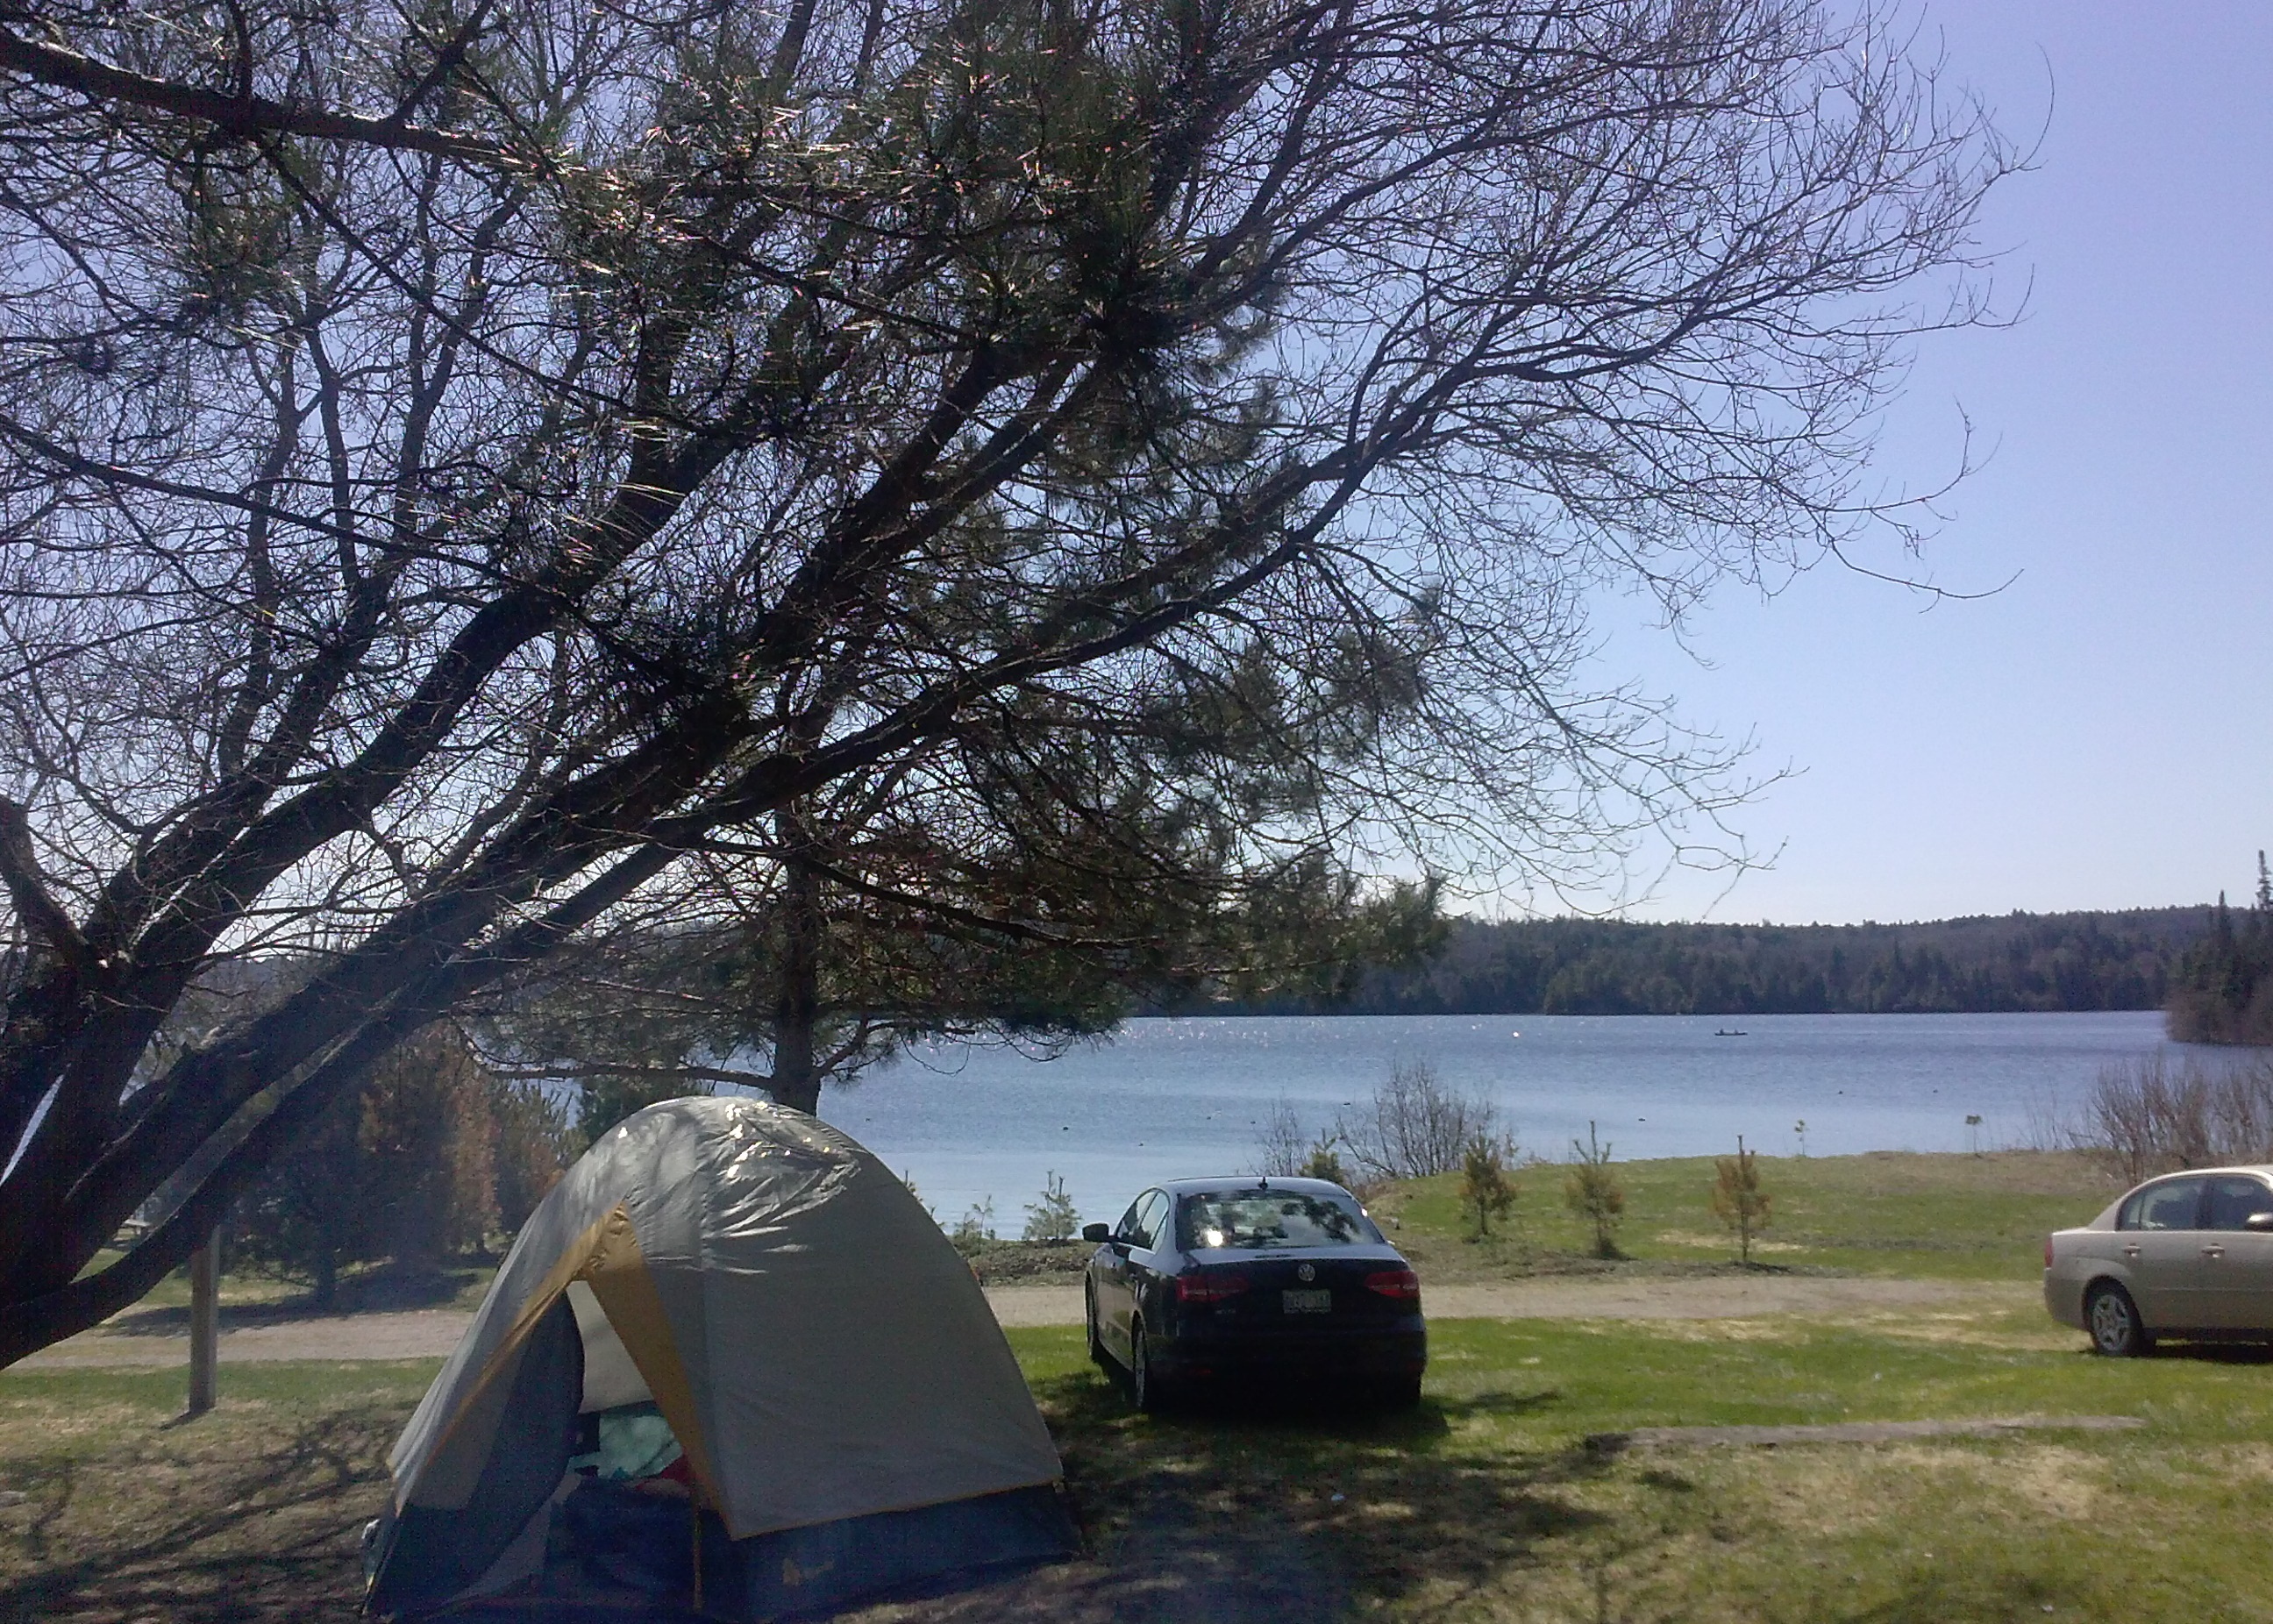 View of our campsite